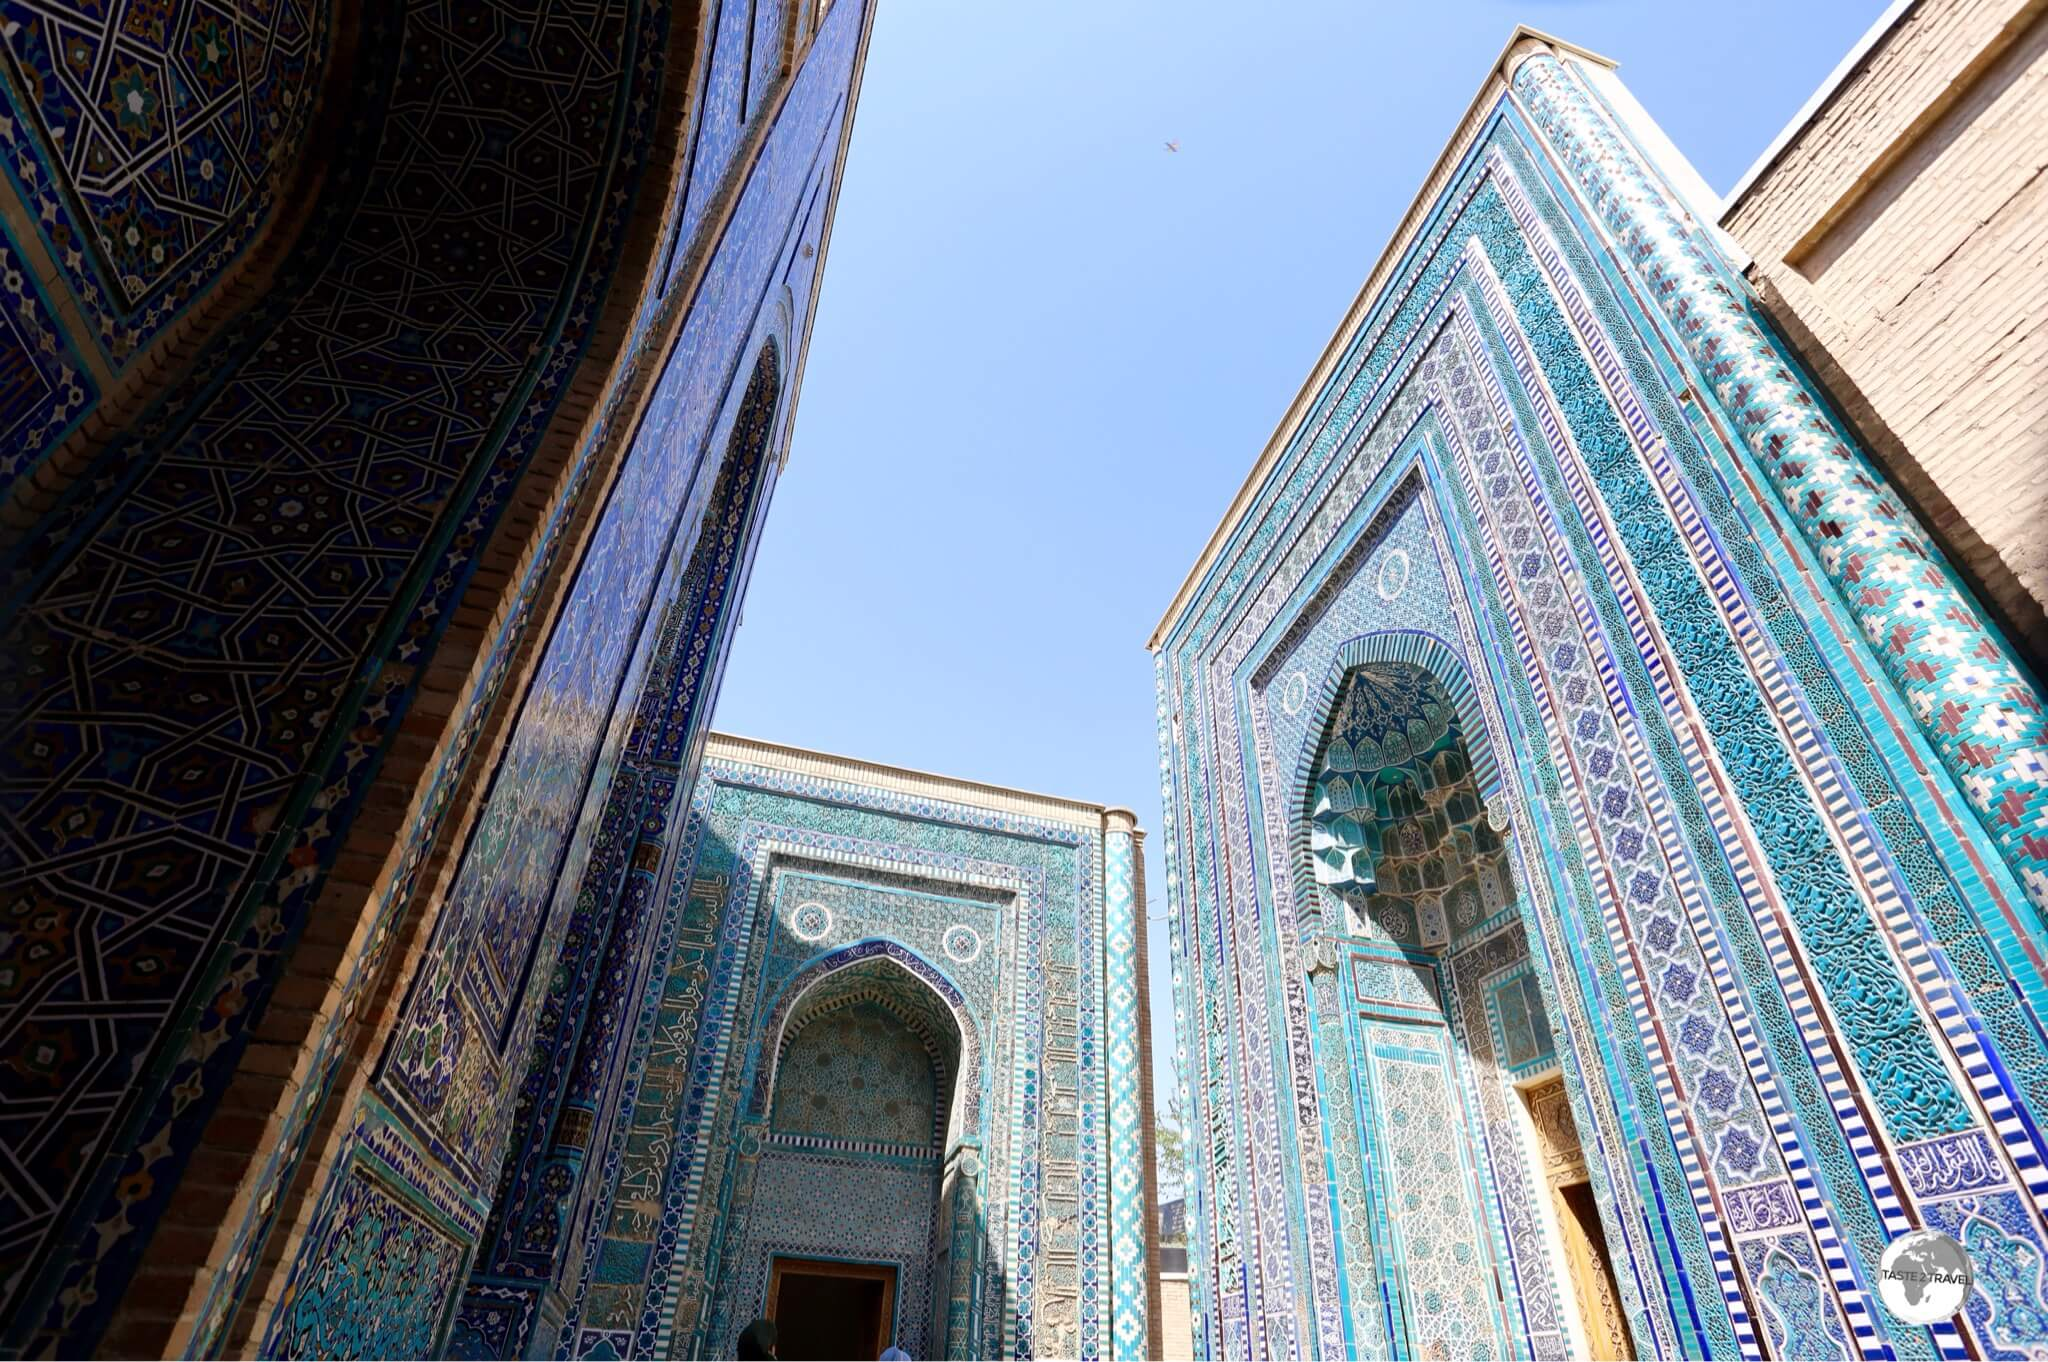 Shah-i-Zinda in Samarkand consists of an avenue of exquisitely tiled mausoleums.